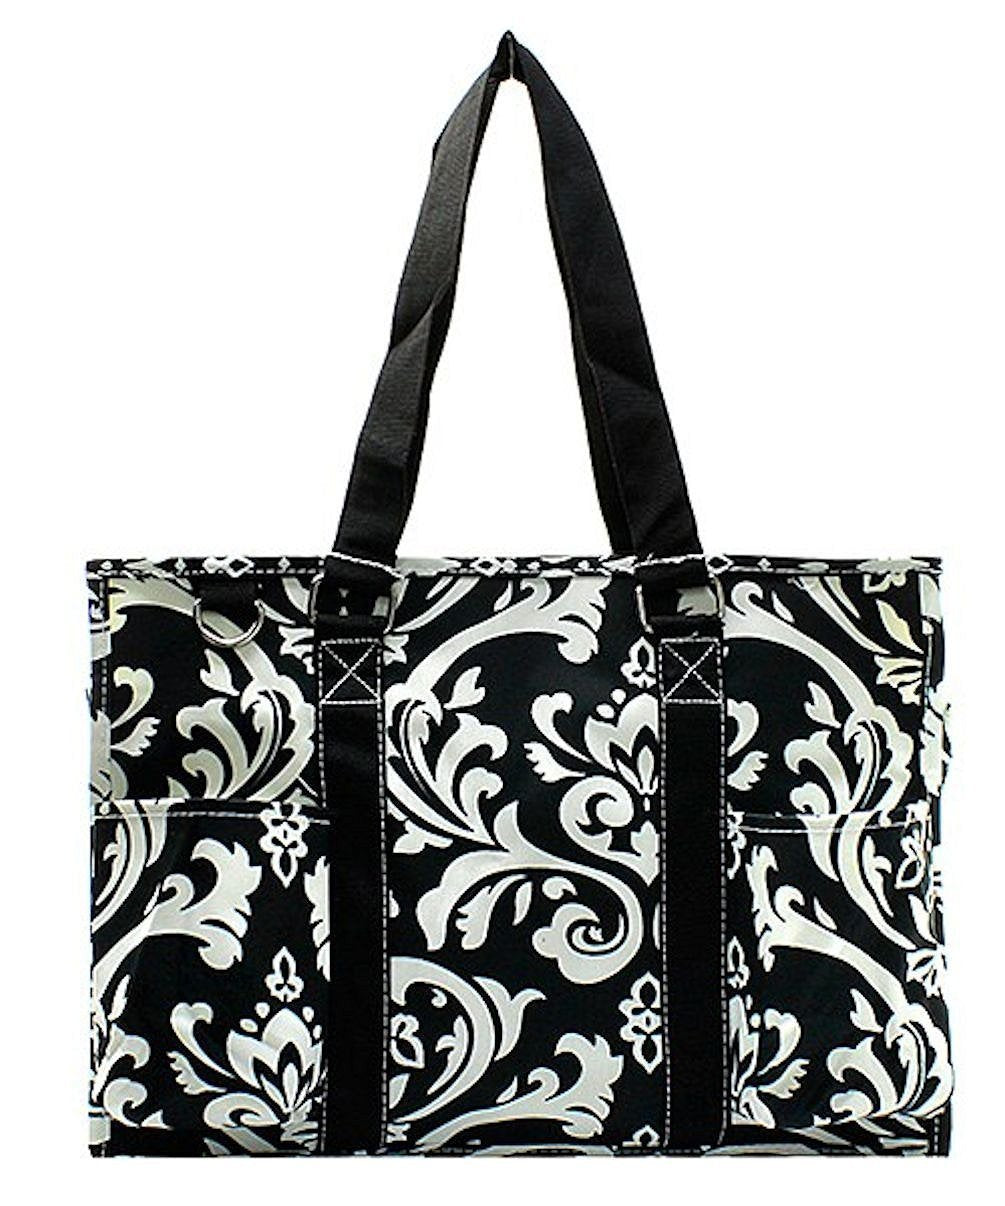 N Gil All Purpose Organizer Medium Utility Tote Bag 2 (Damask Black) - wiihuu